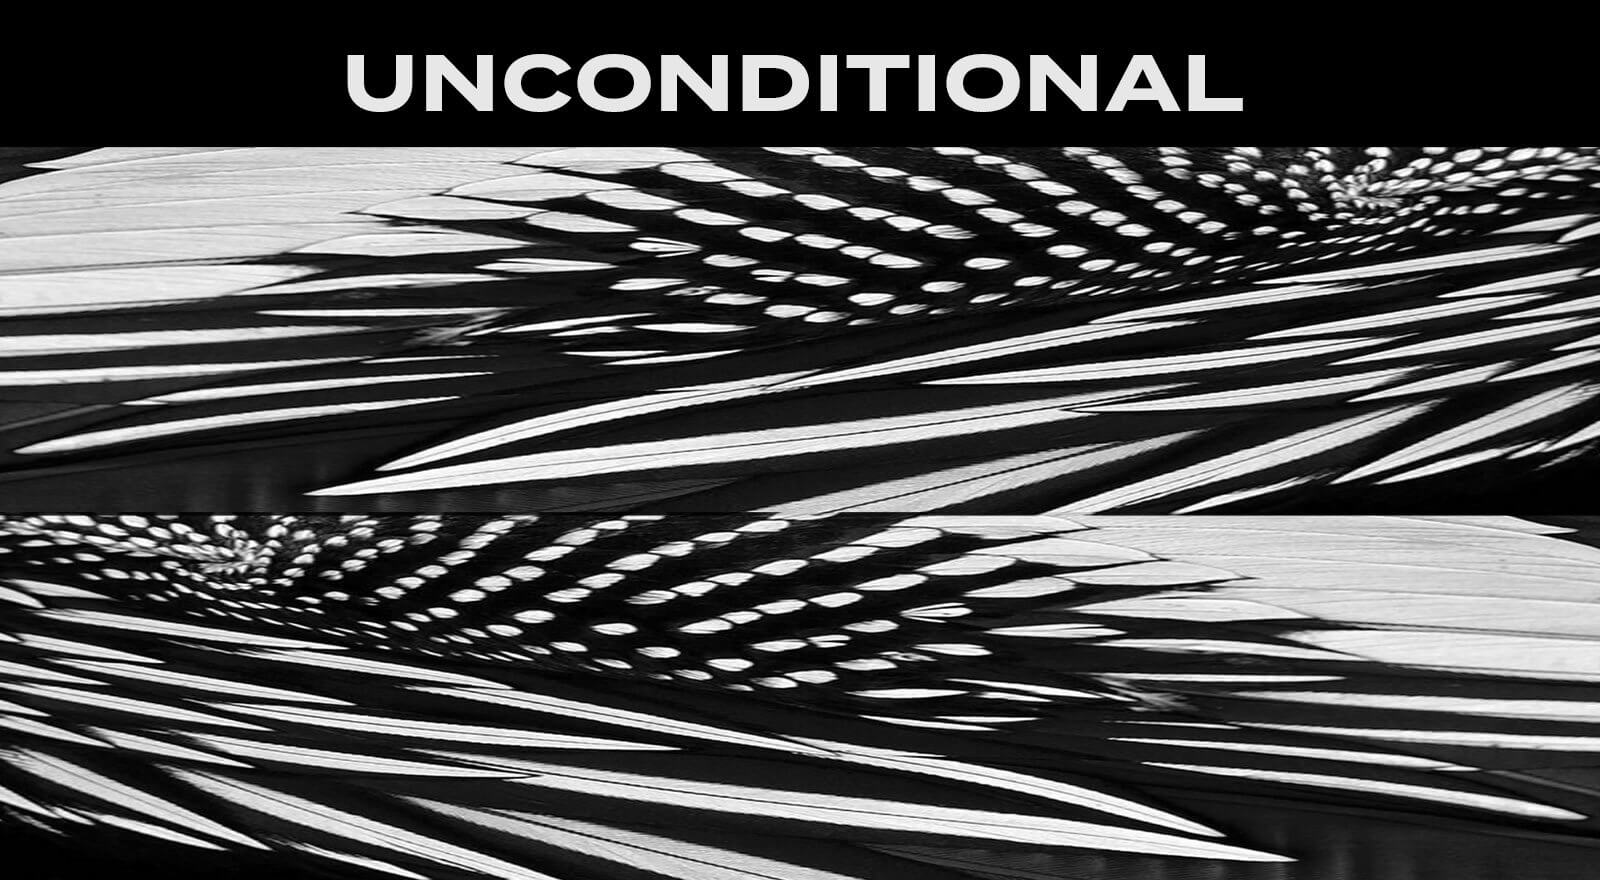 D/Luca Feather Black Unconditional - Artwork